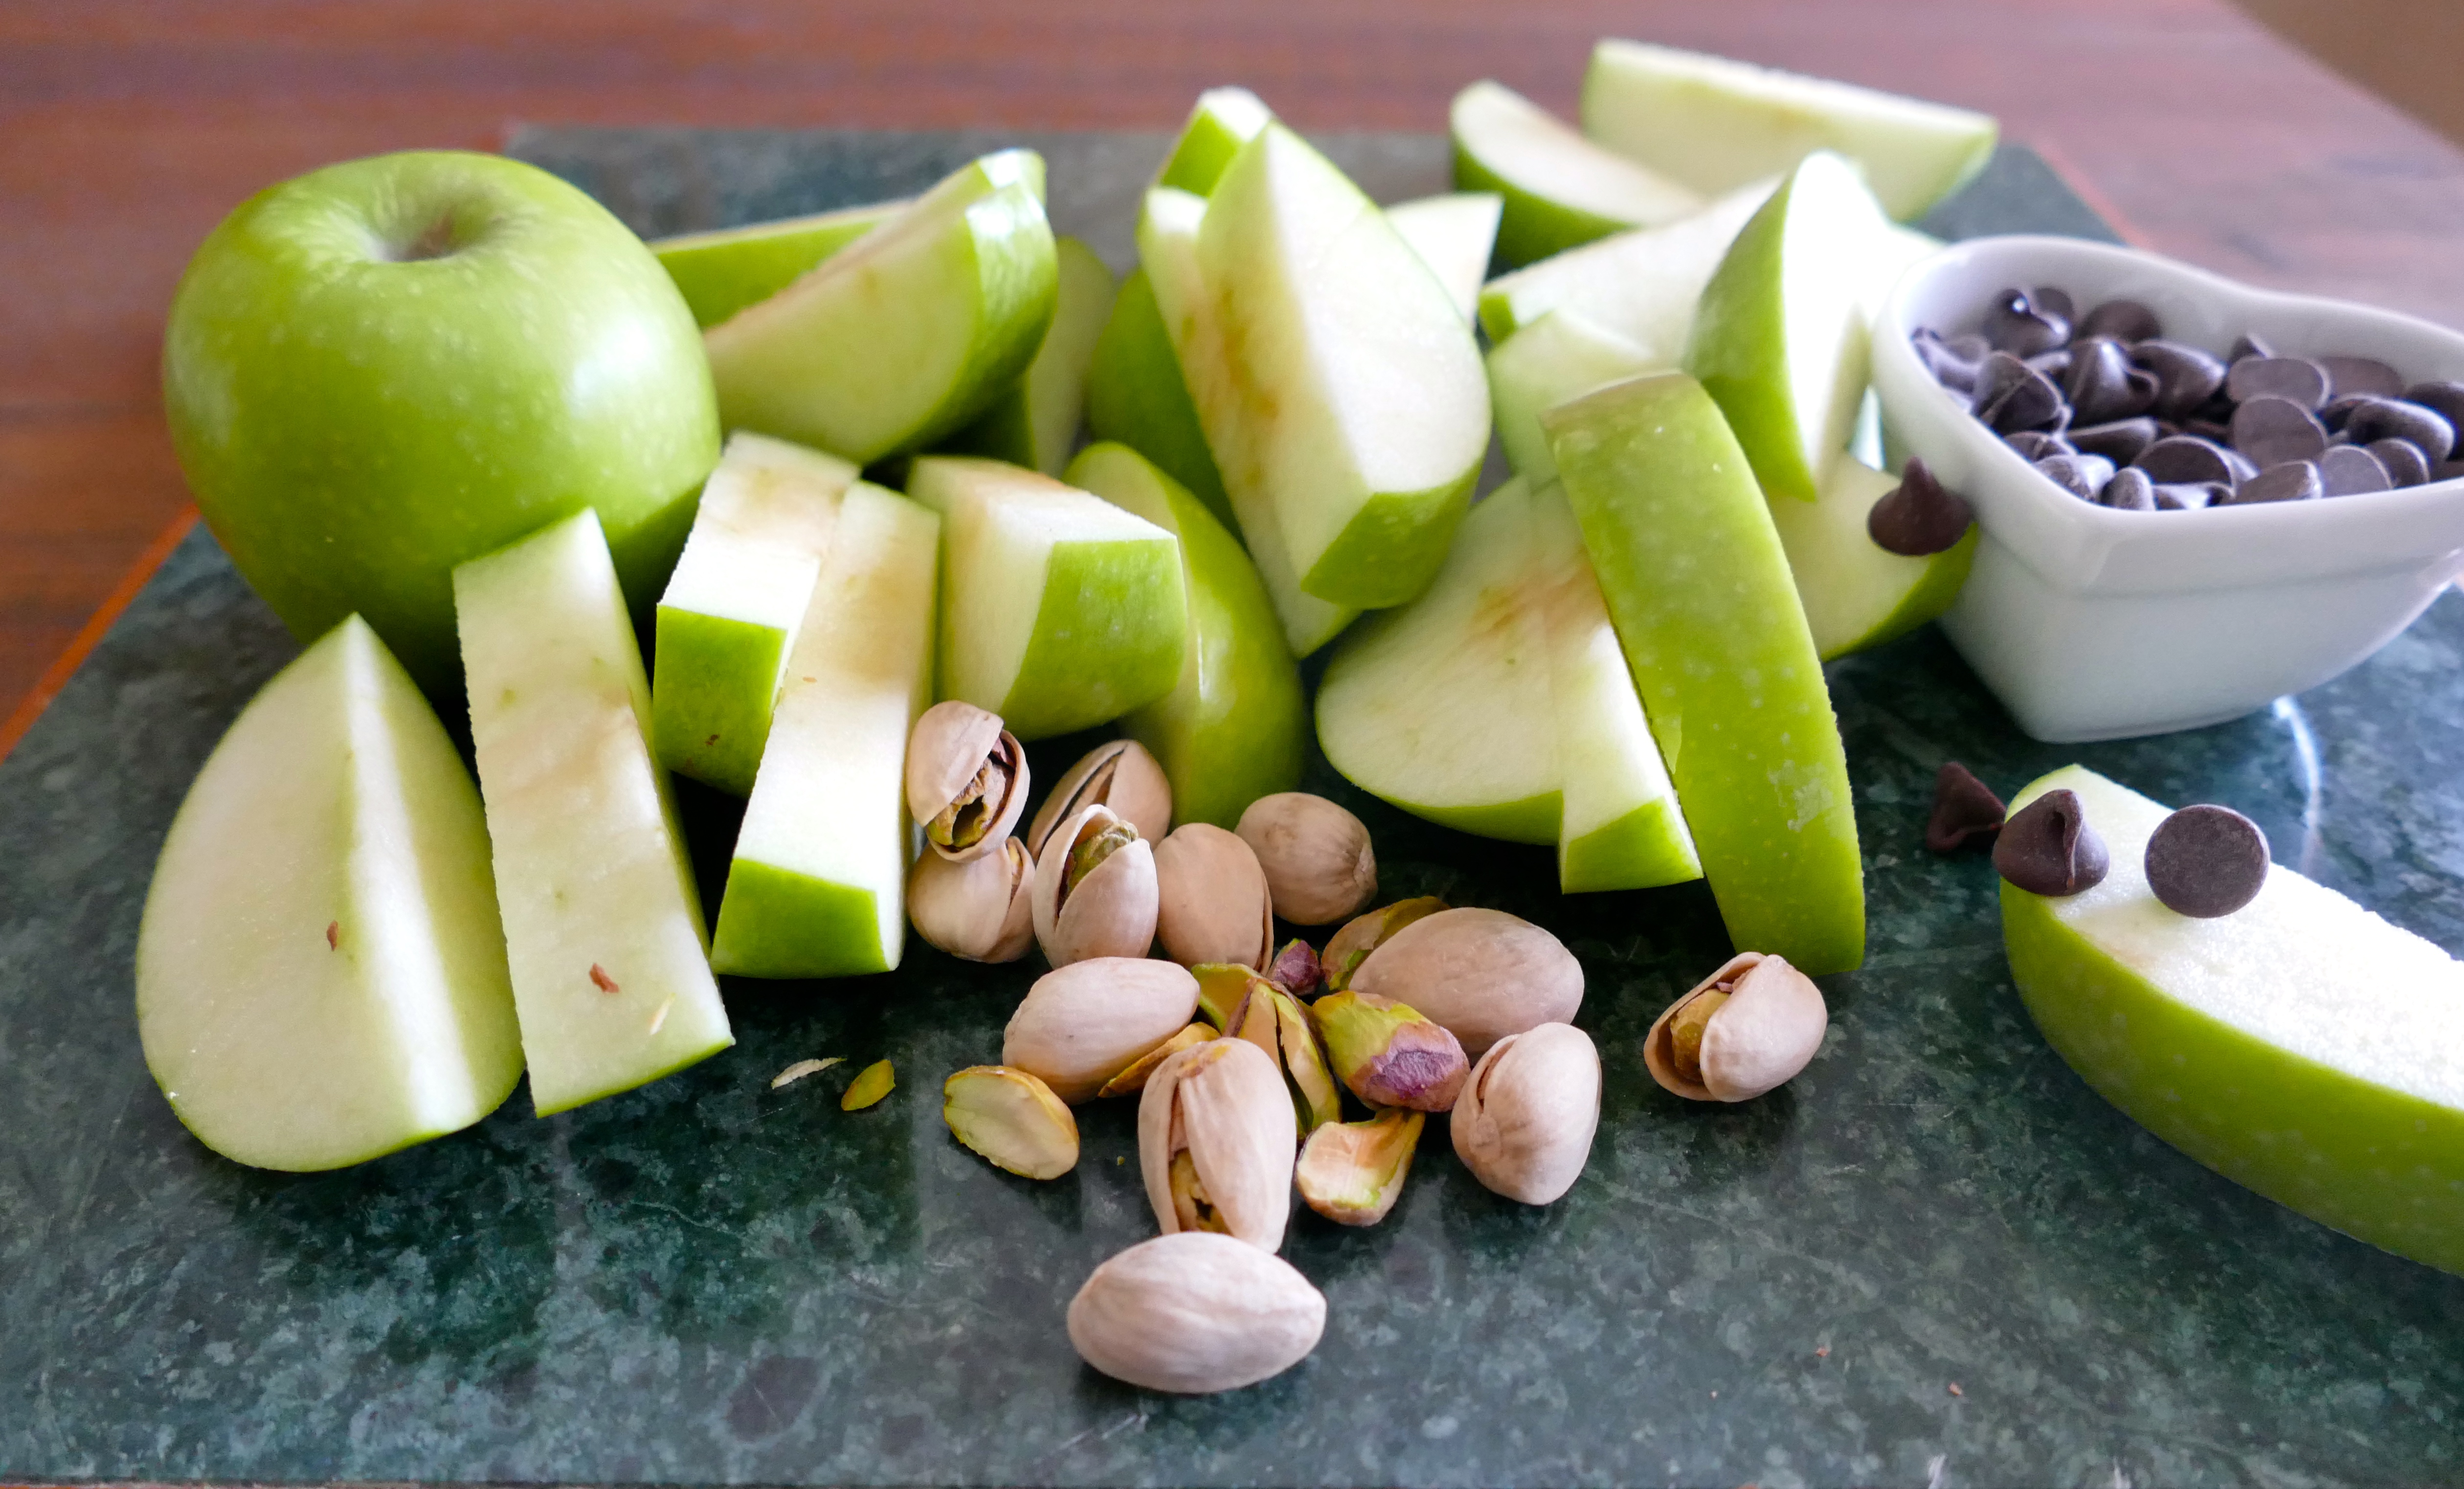 Healthy Green Treats and RD Day! | The Nutty Nutritionist